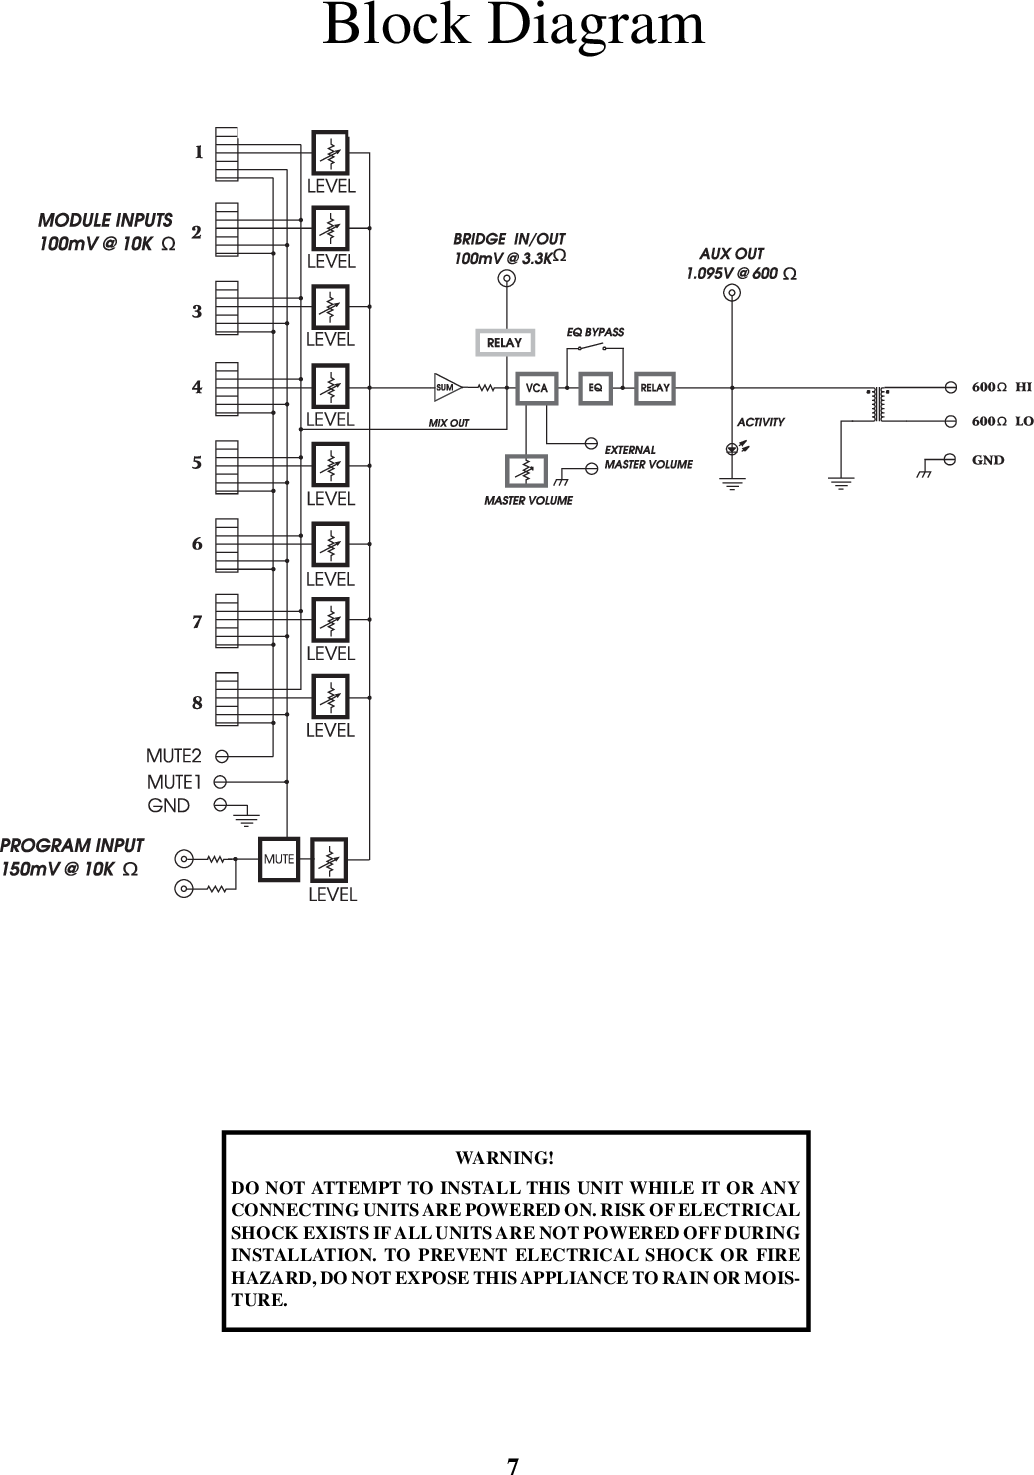 Peavey Mma 800t Users Manual Om T 40 B Wiring Diagram Page 8 Of 12